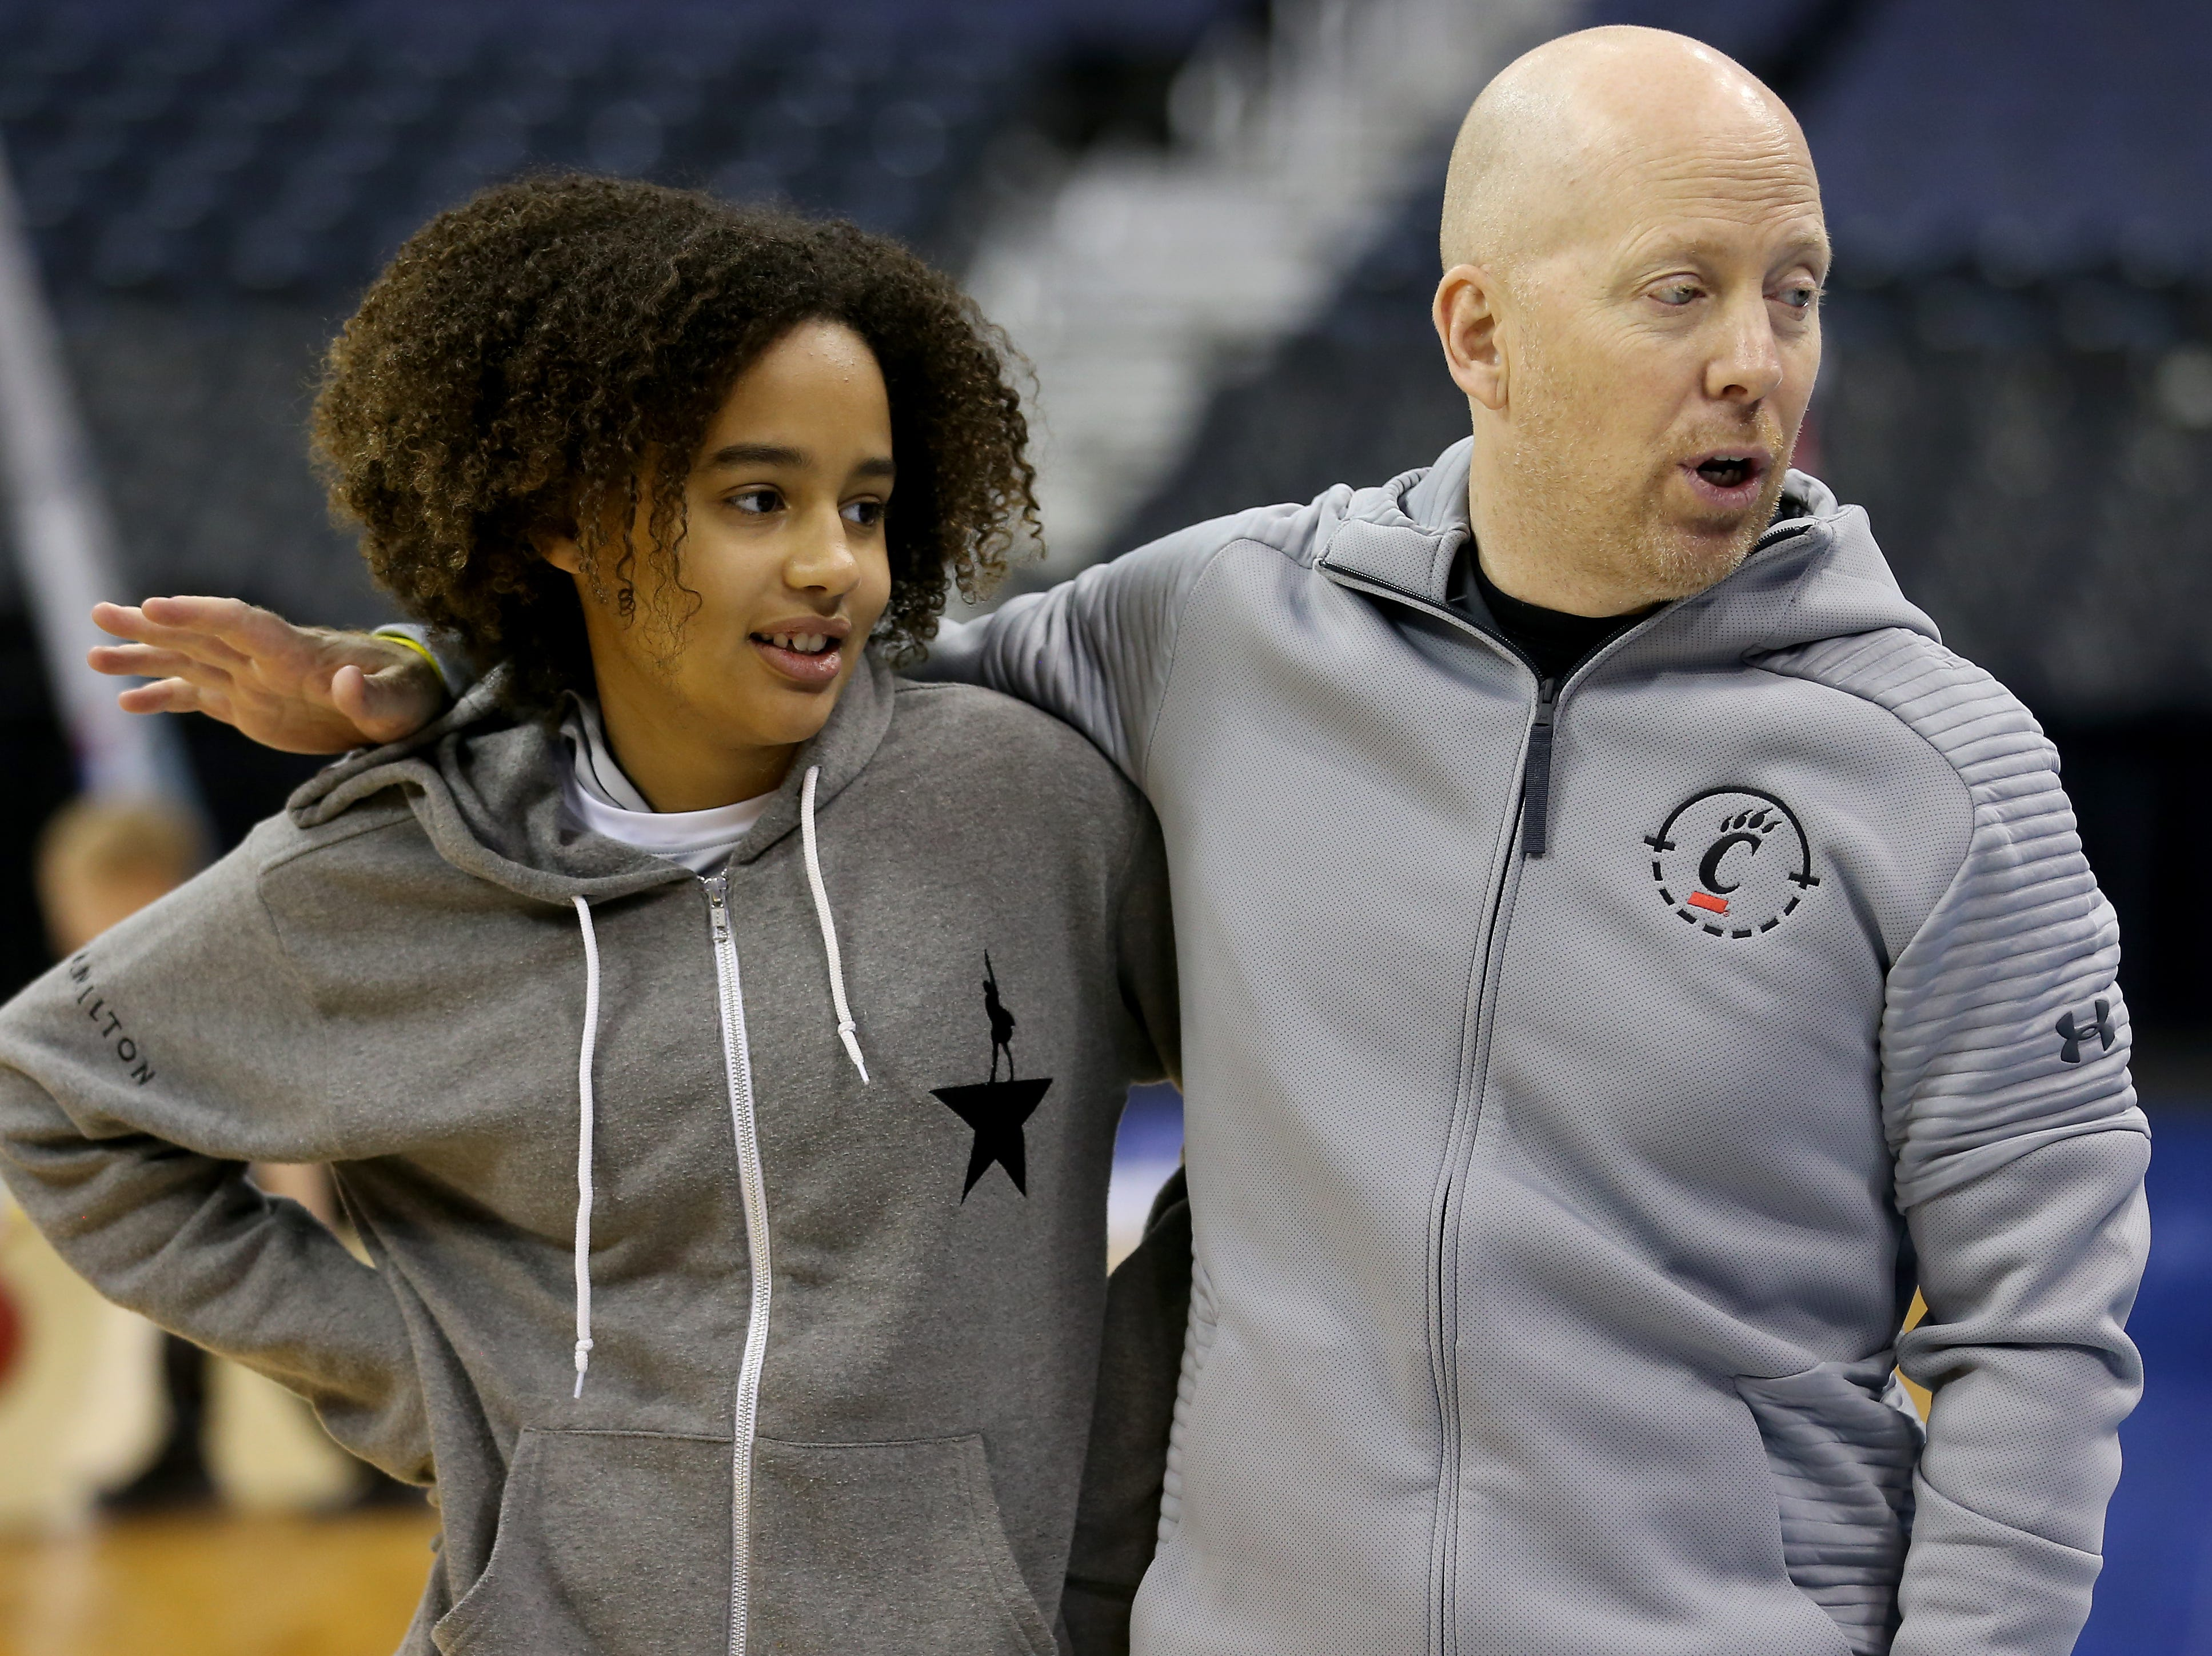 Cincinnati Bearcats head coach Mick Cronin embraces his daughter, Sammi, during open practice, Thursday, March 21, 2019, at Nationwide Arena in Columbus, Ohio.